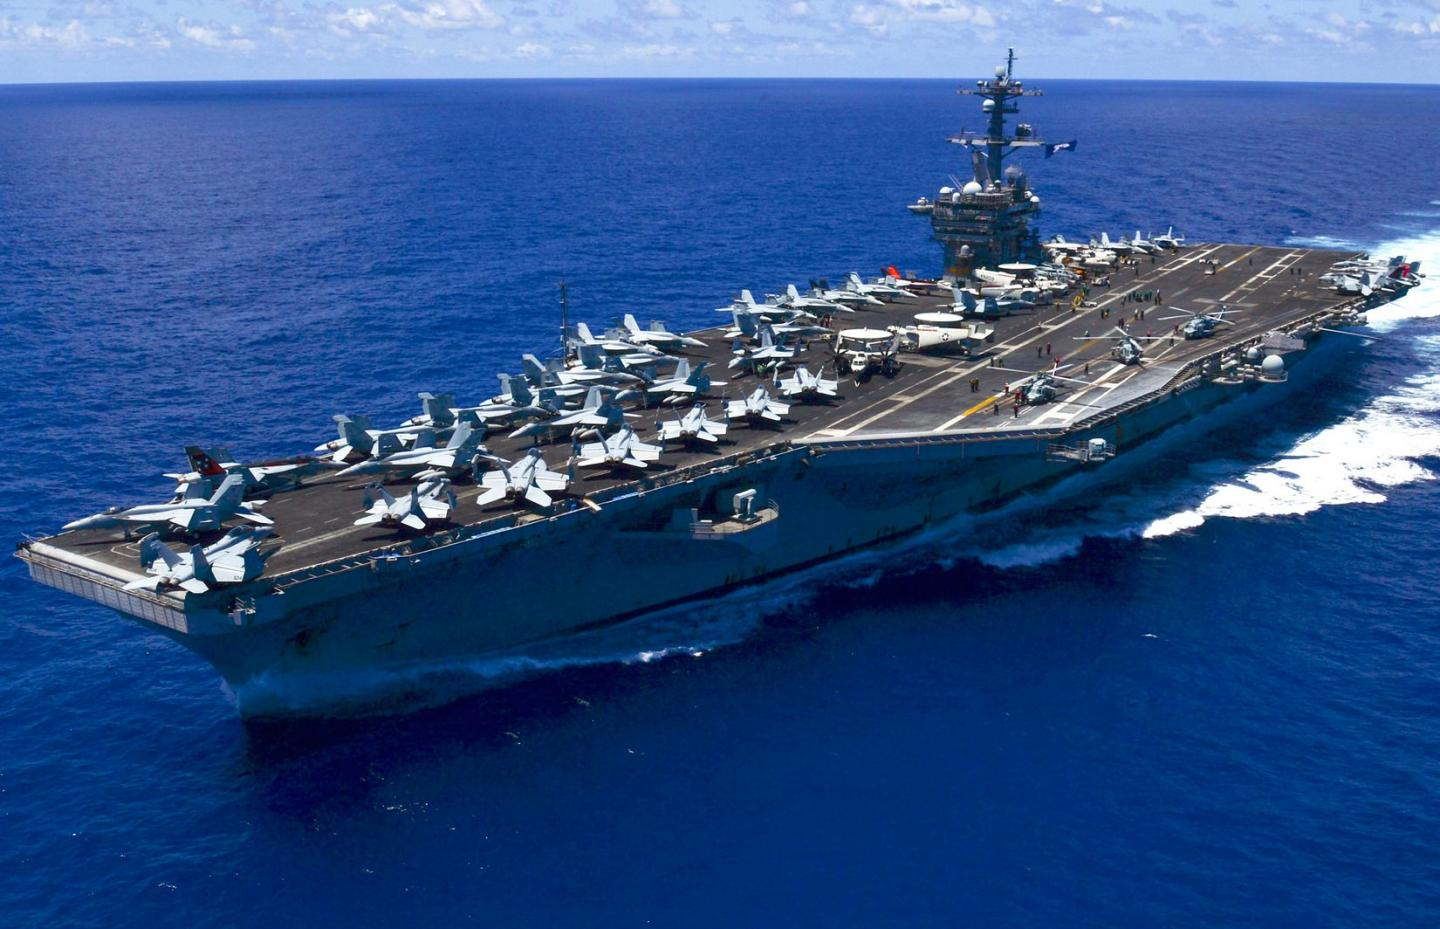 Middle East War: How Iran Could Attack the U.S. Navys Aircraft Carriers